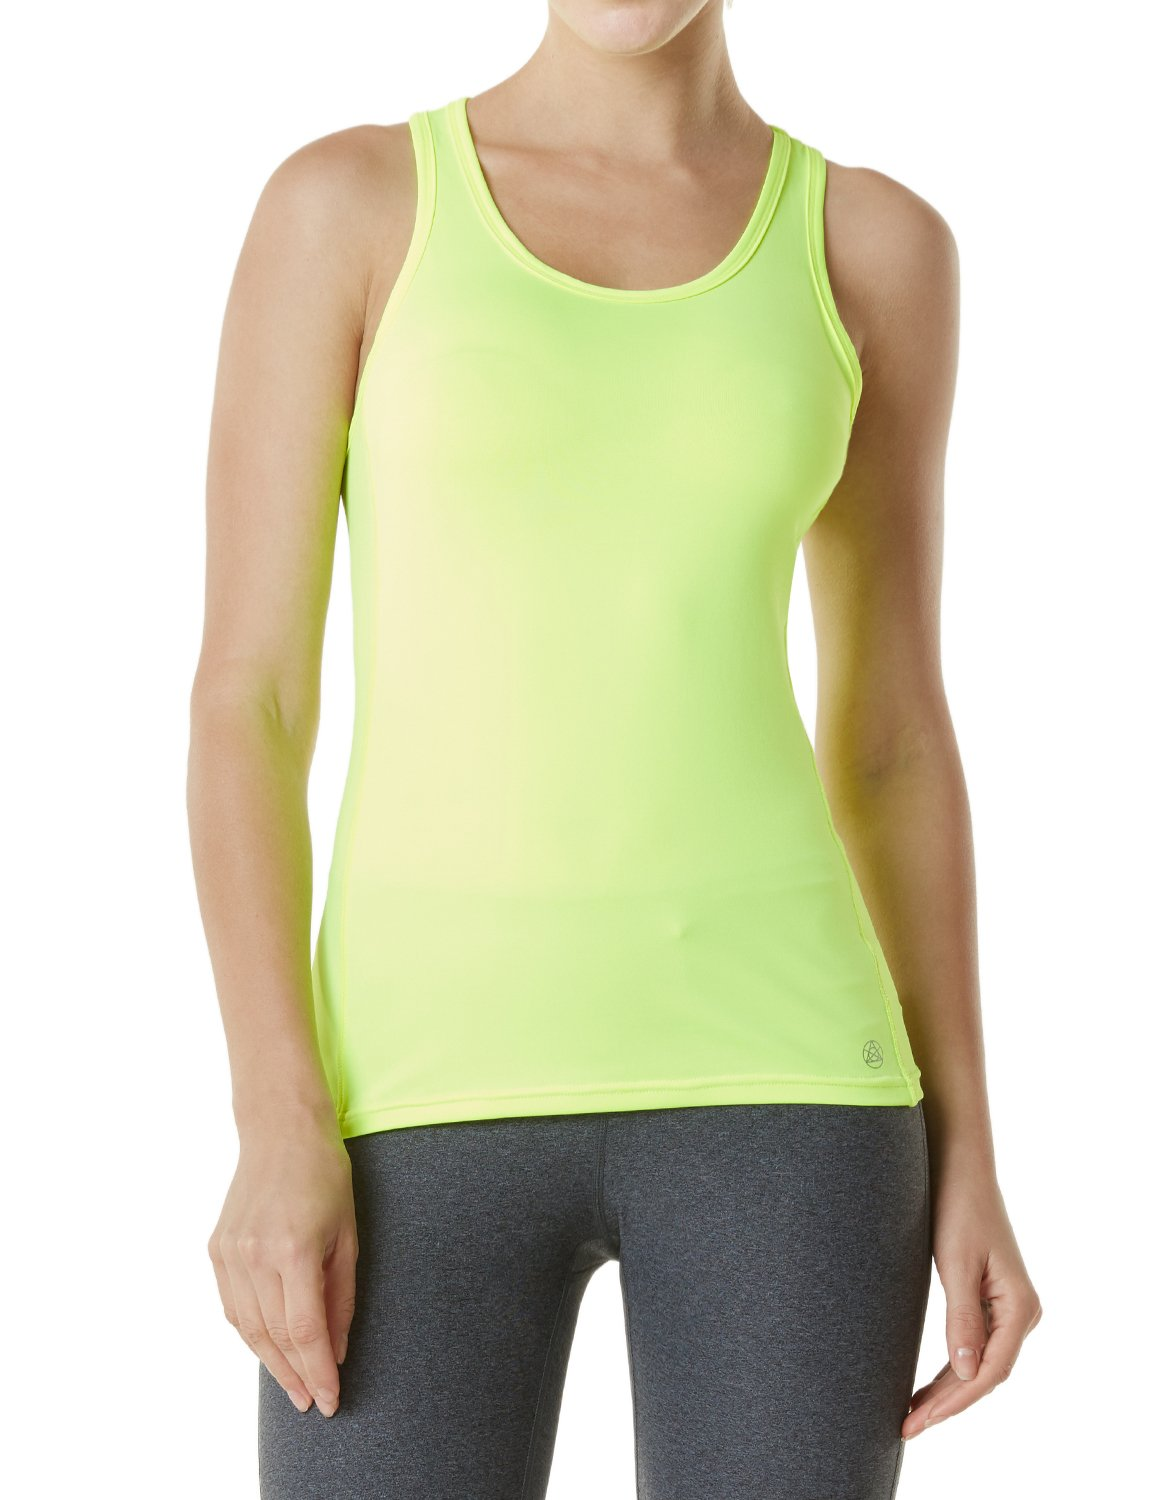 fec3ebf9ef7a1 TSLA Racerback Tank Compression Cool Crop Fitness Yoga Slim Fit Top FYN01    FUV06  FUN74